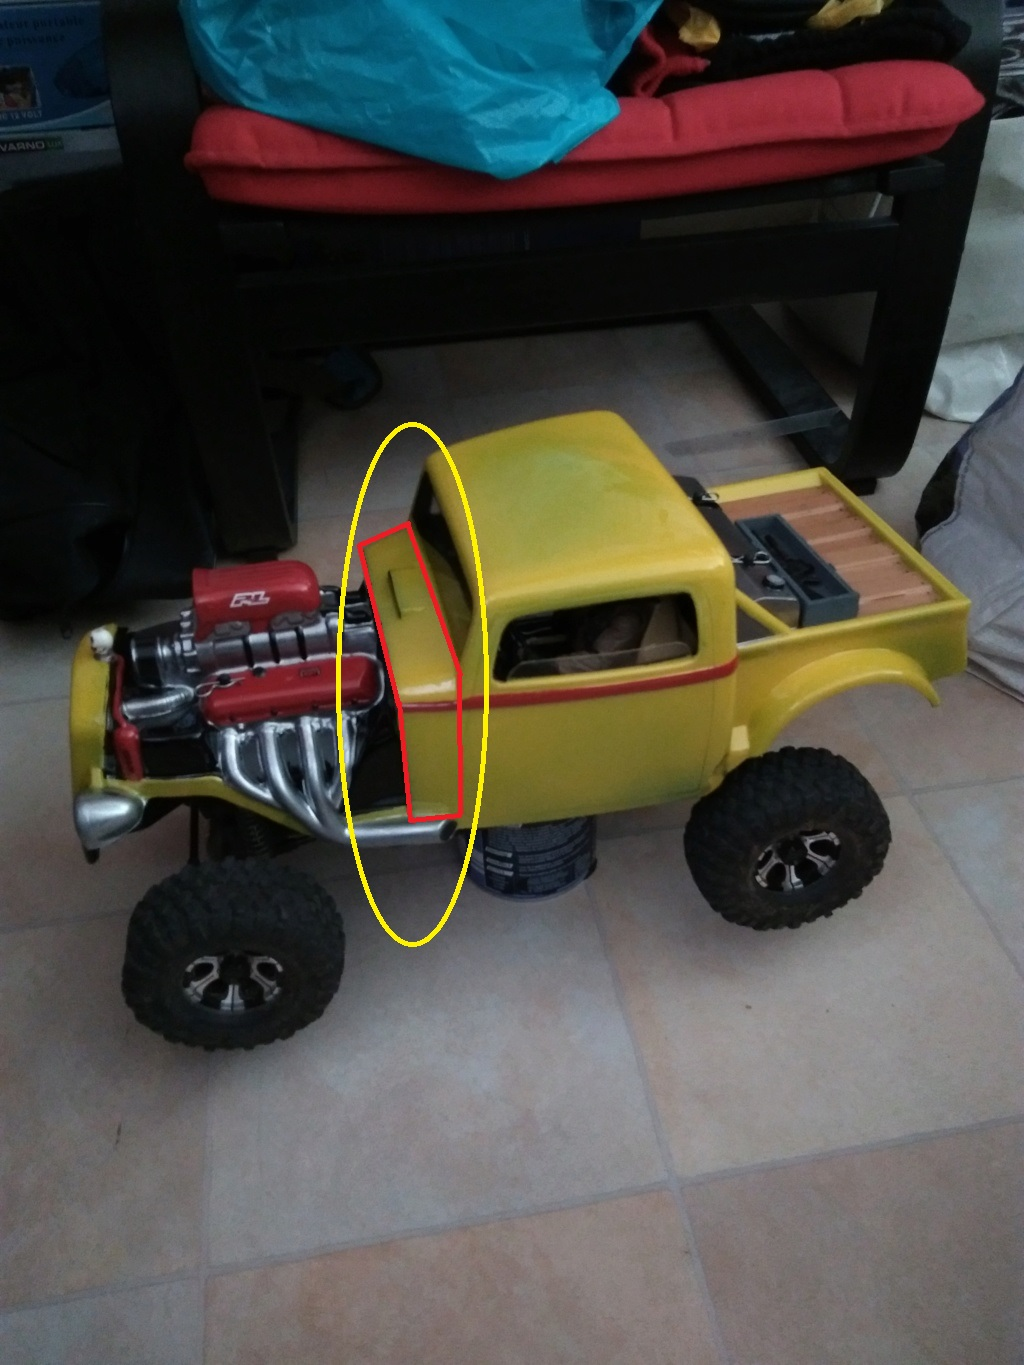 Carrosserie Hot Rod sur Chassis TRX-4 by Ruru - Page 2 Propal10